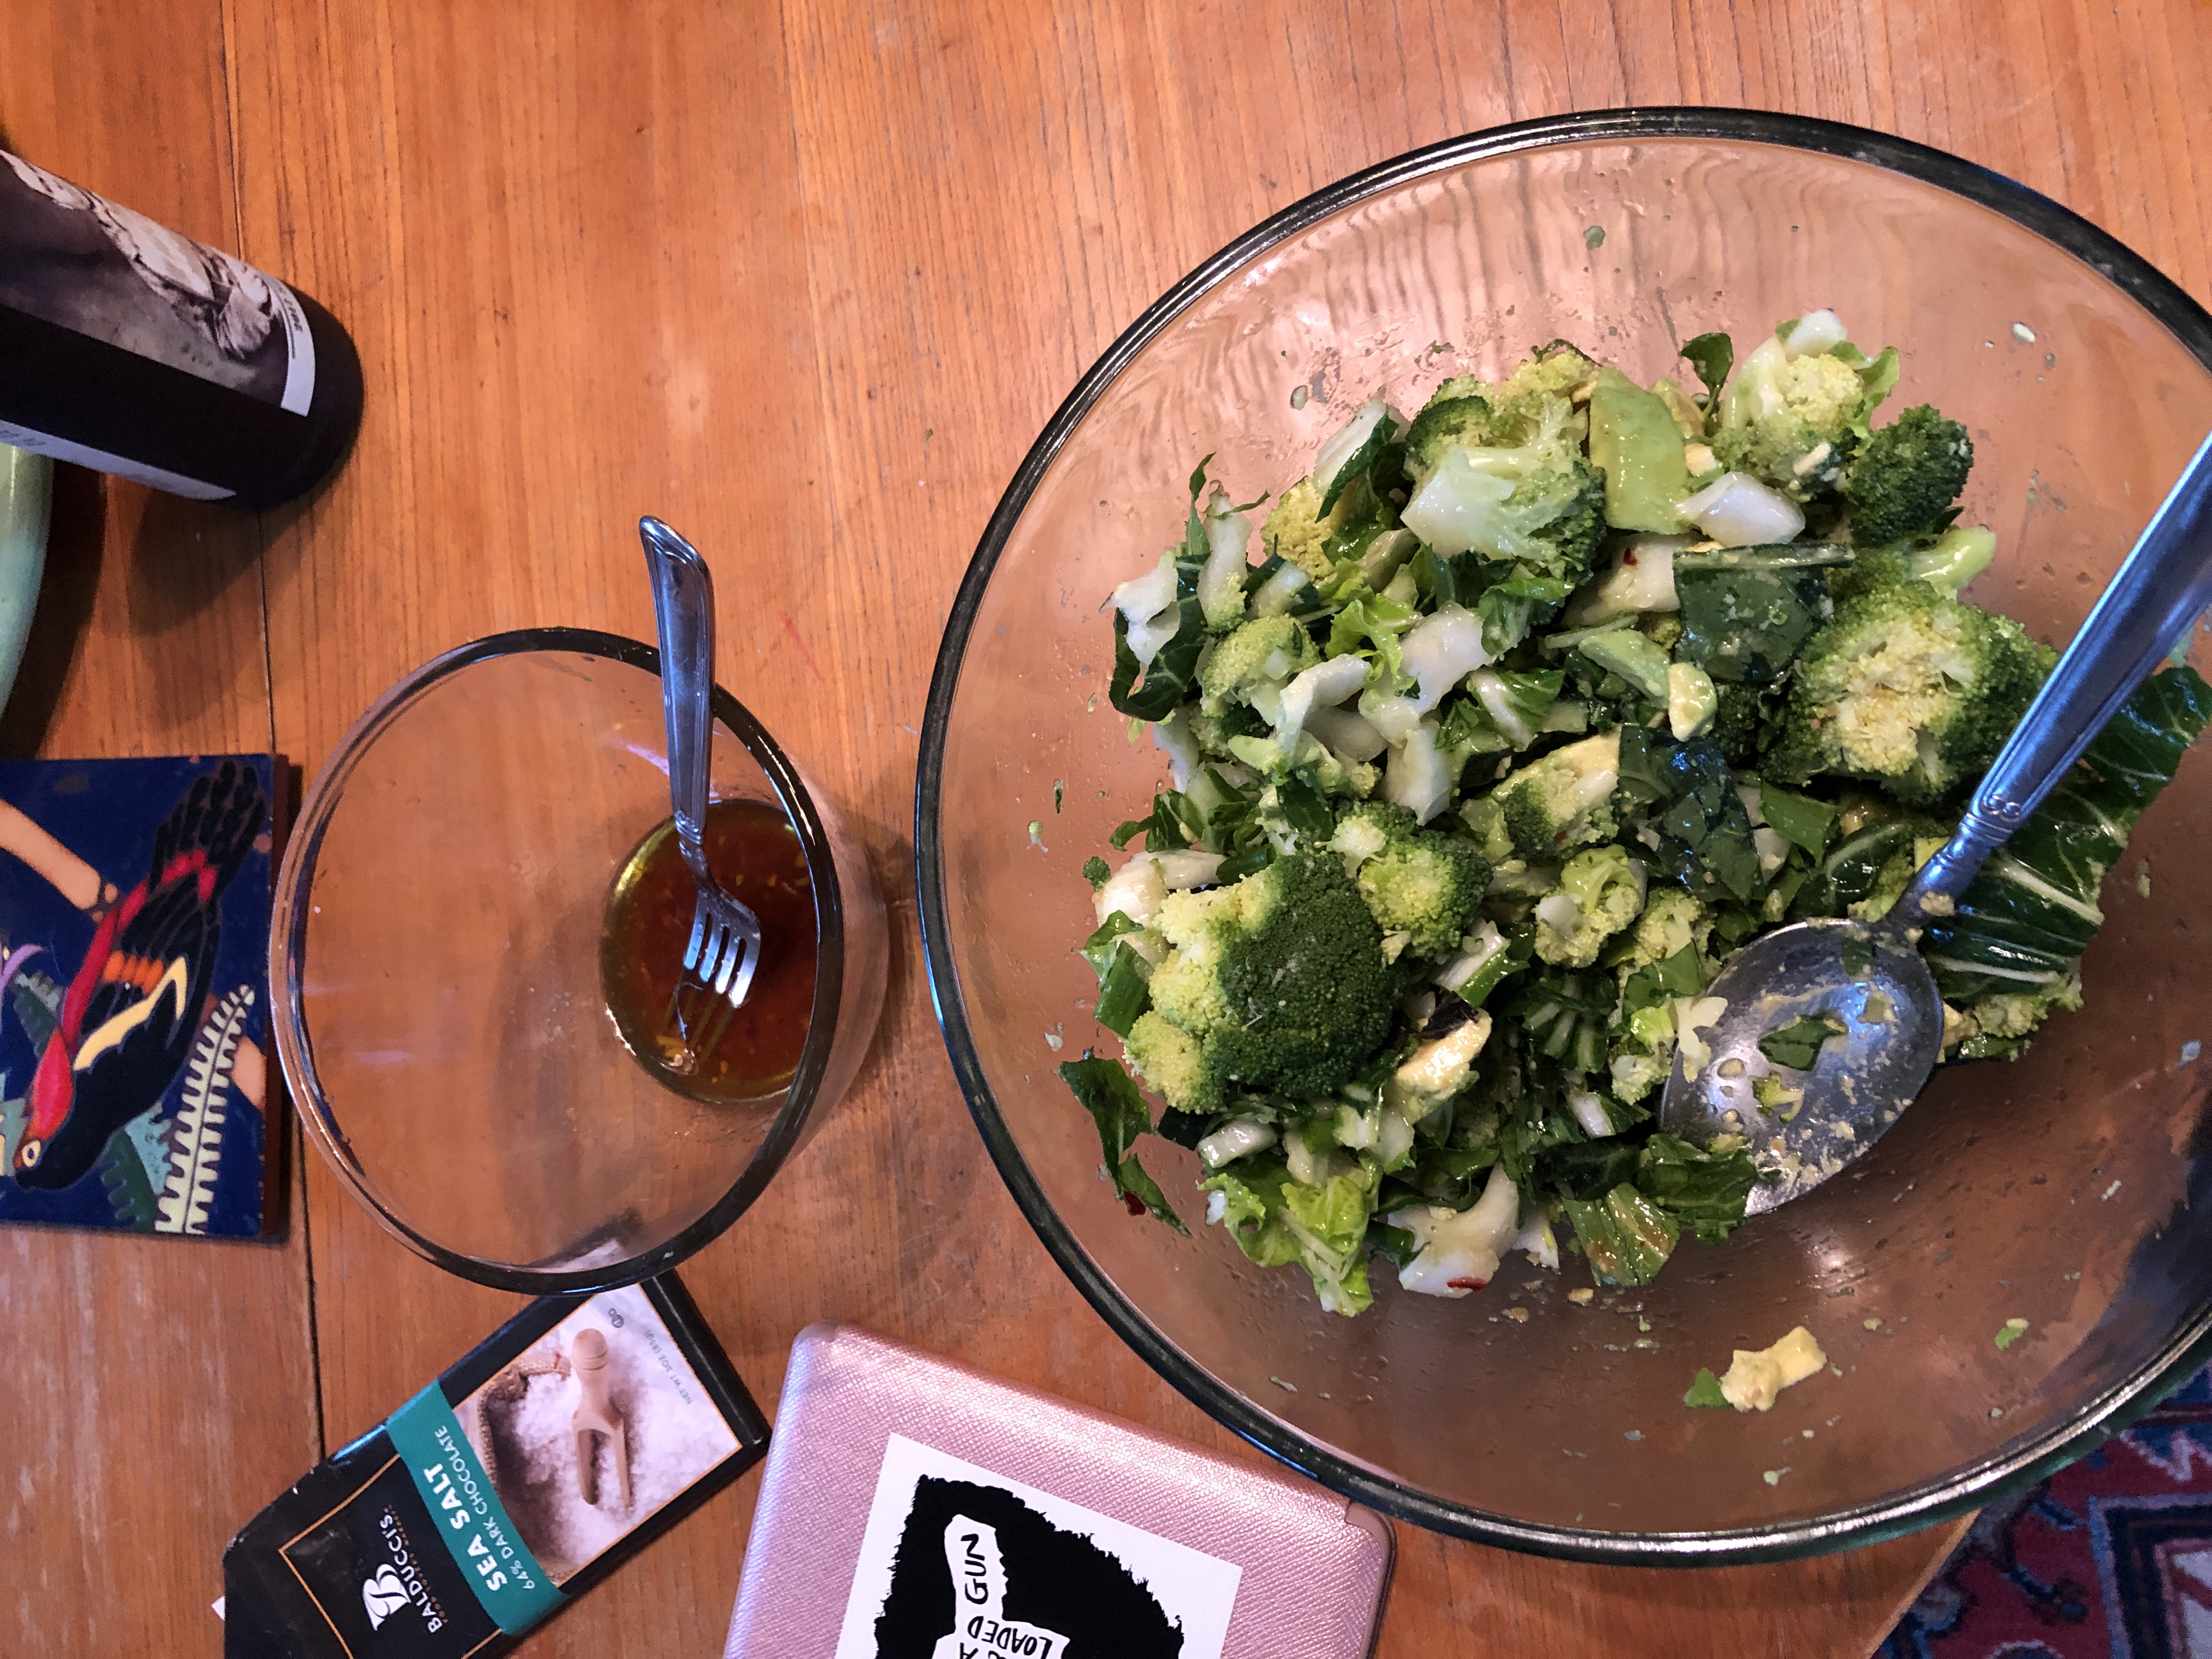 Healthy dinner and a book - an introvert's dream